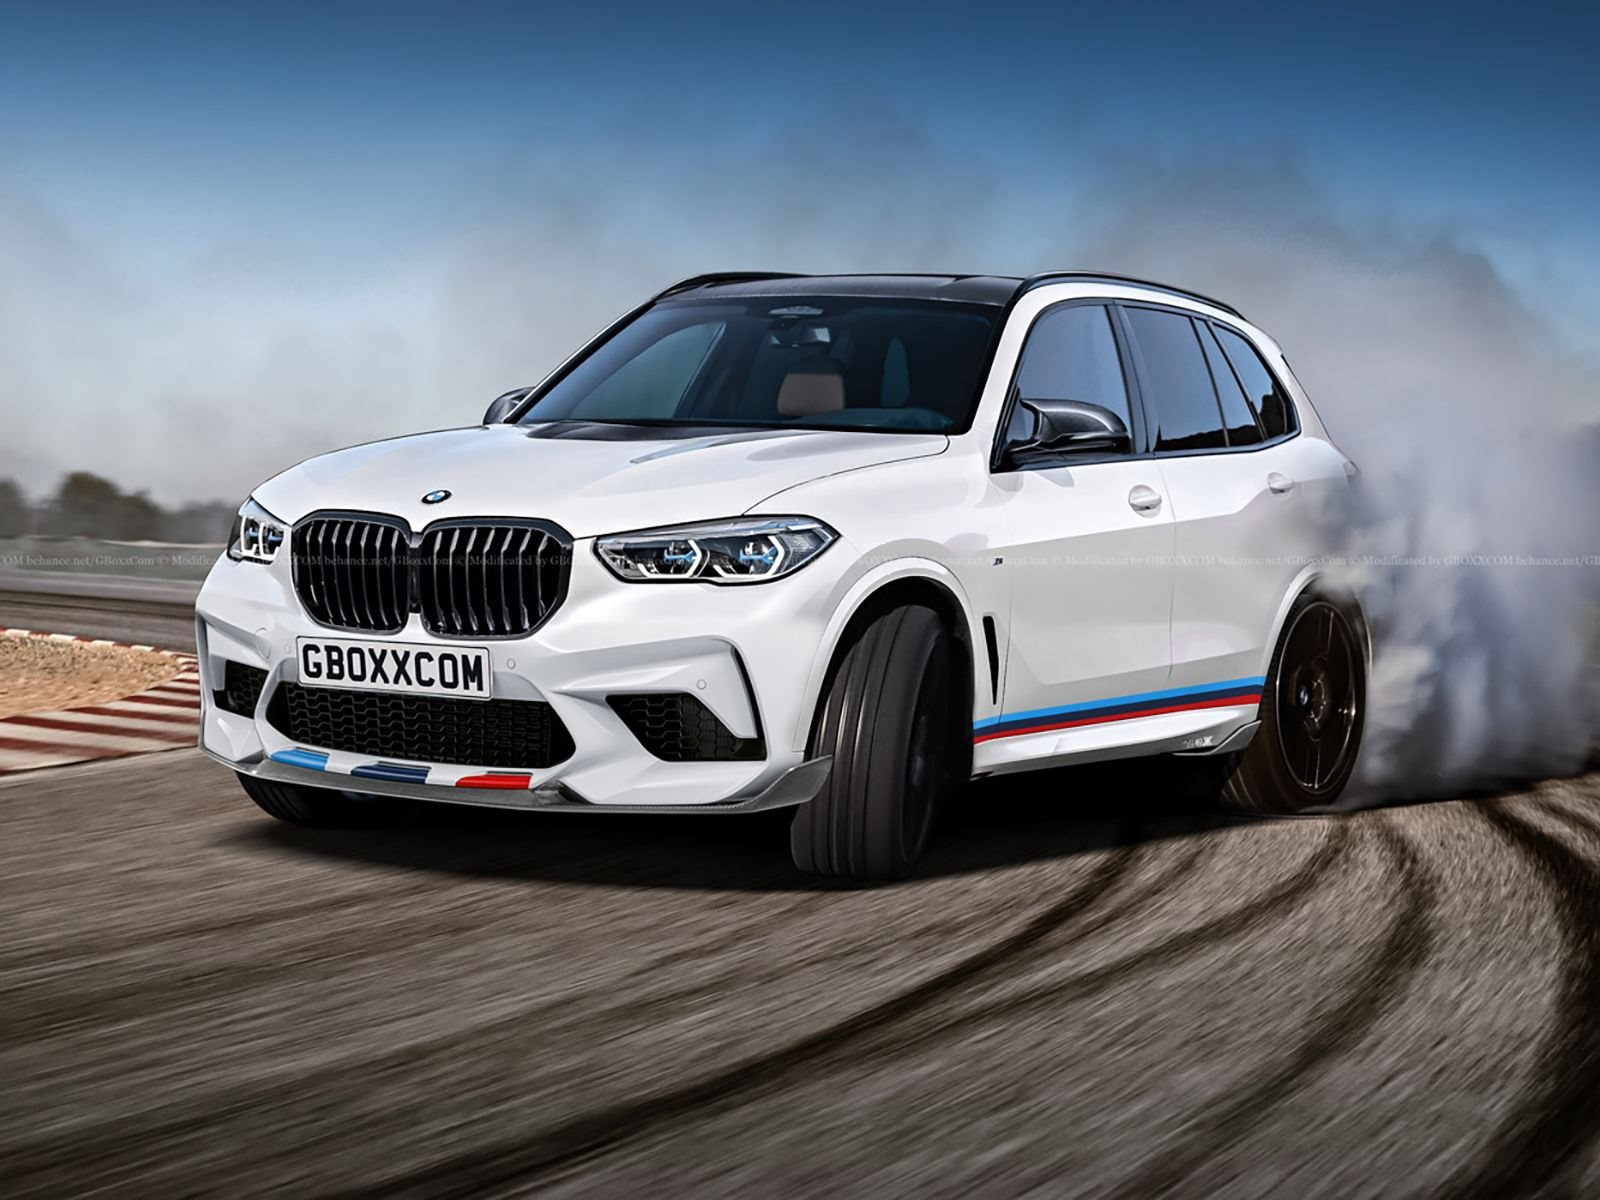 43 A 2020 Next Gen BMW X5 Suv Price